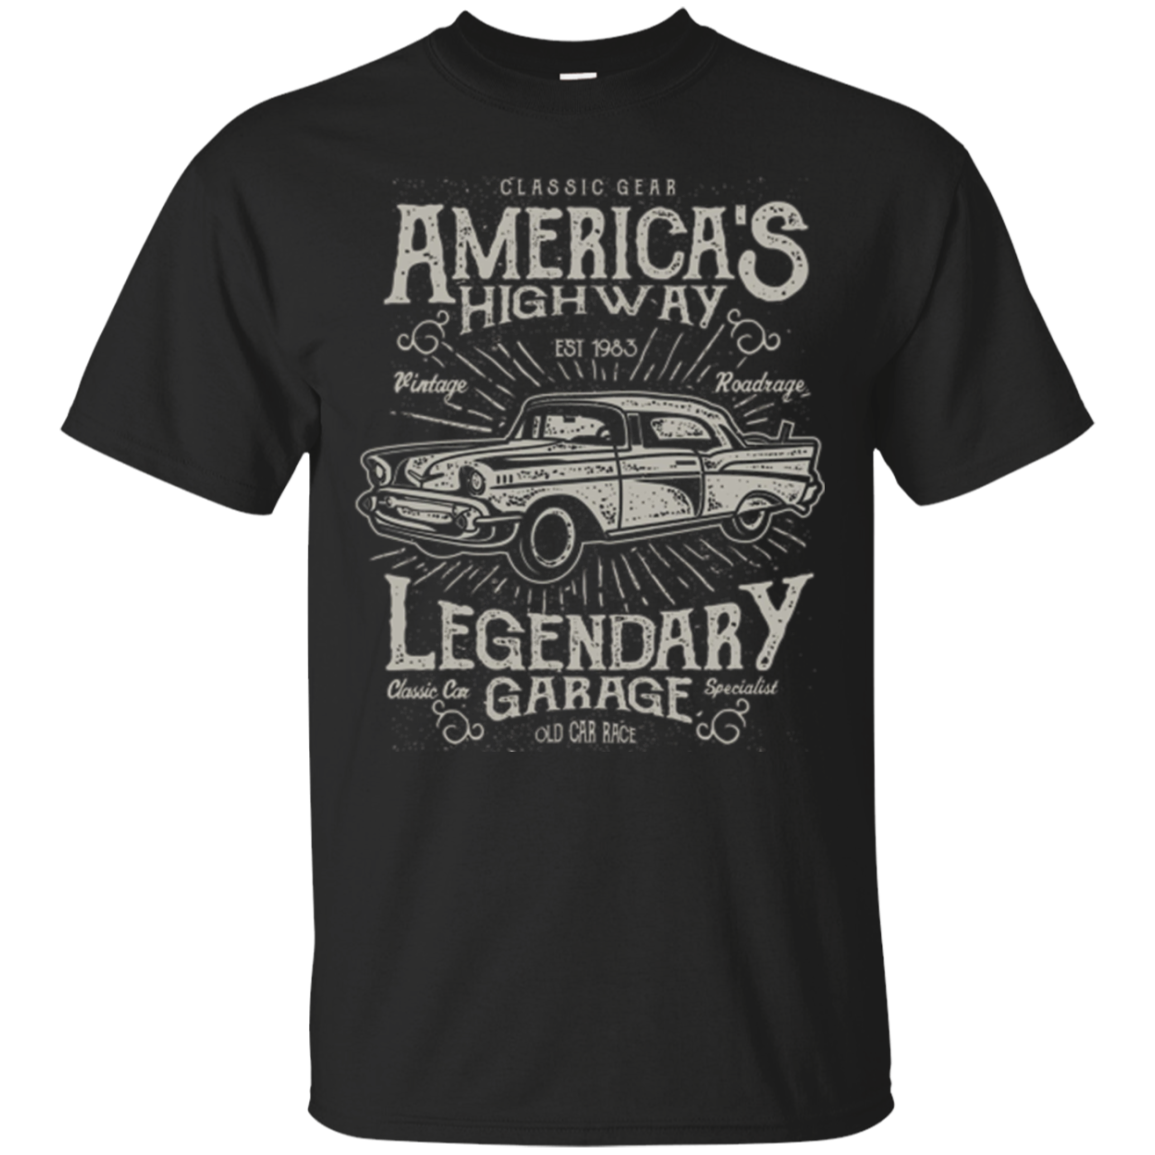 Classic Car T-Shirts - Awesome Old Vintage Cars Tee Shirt